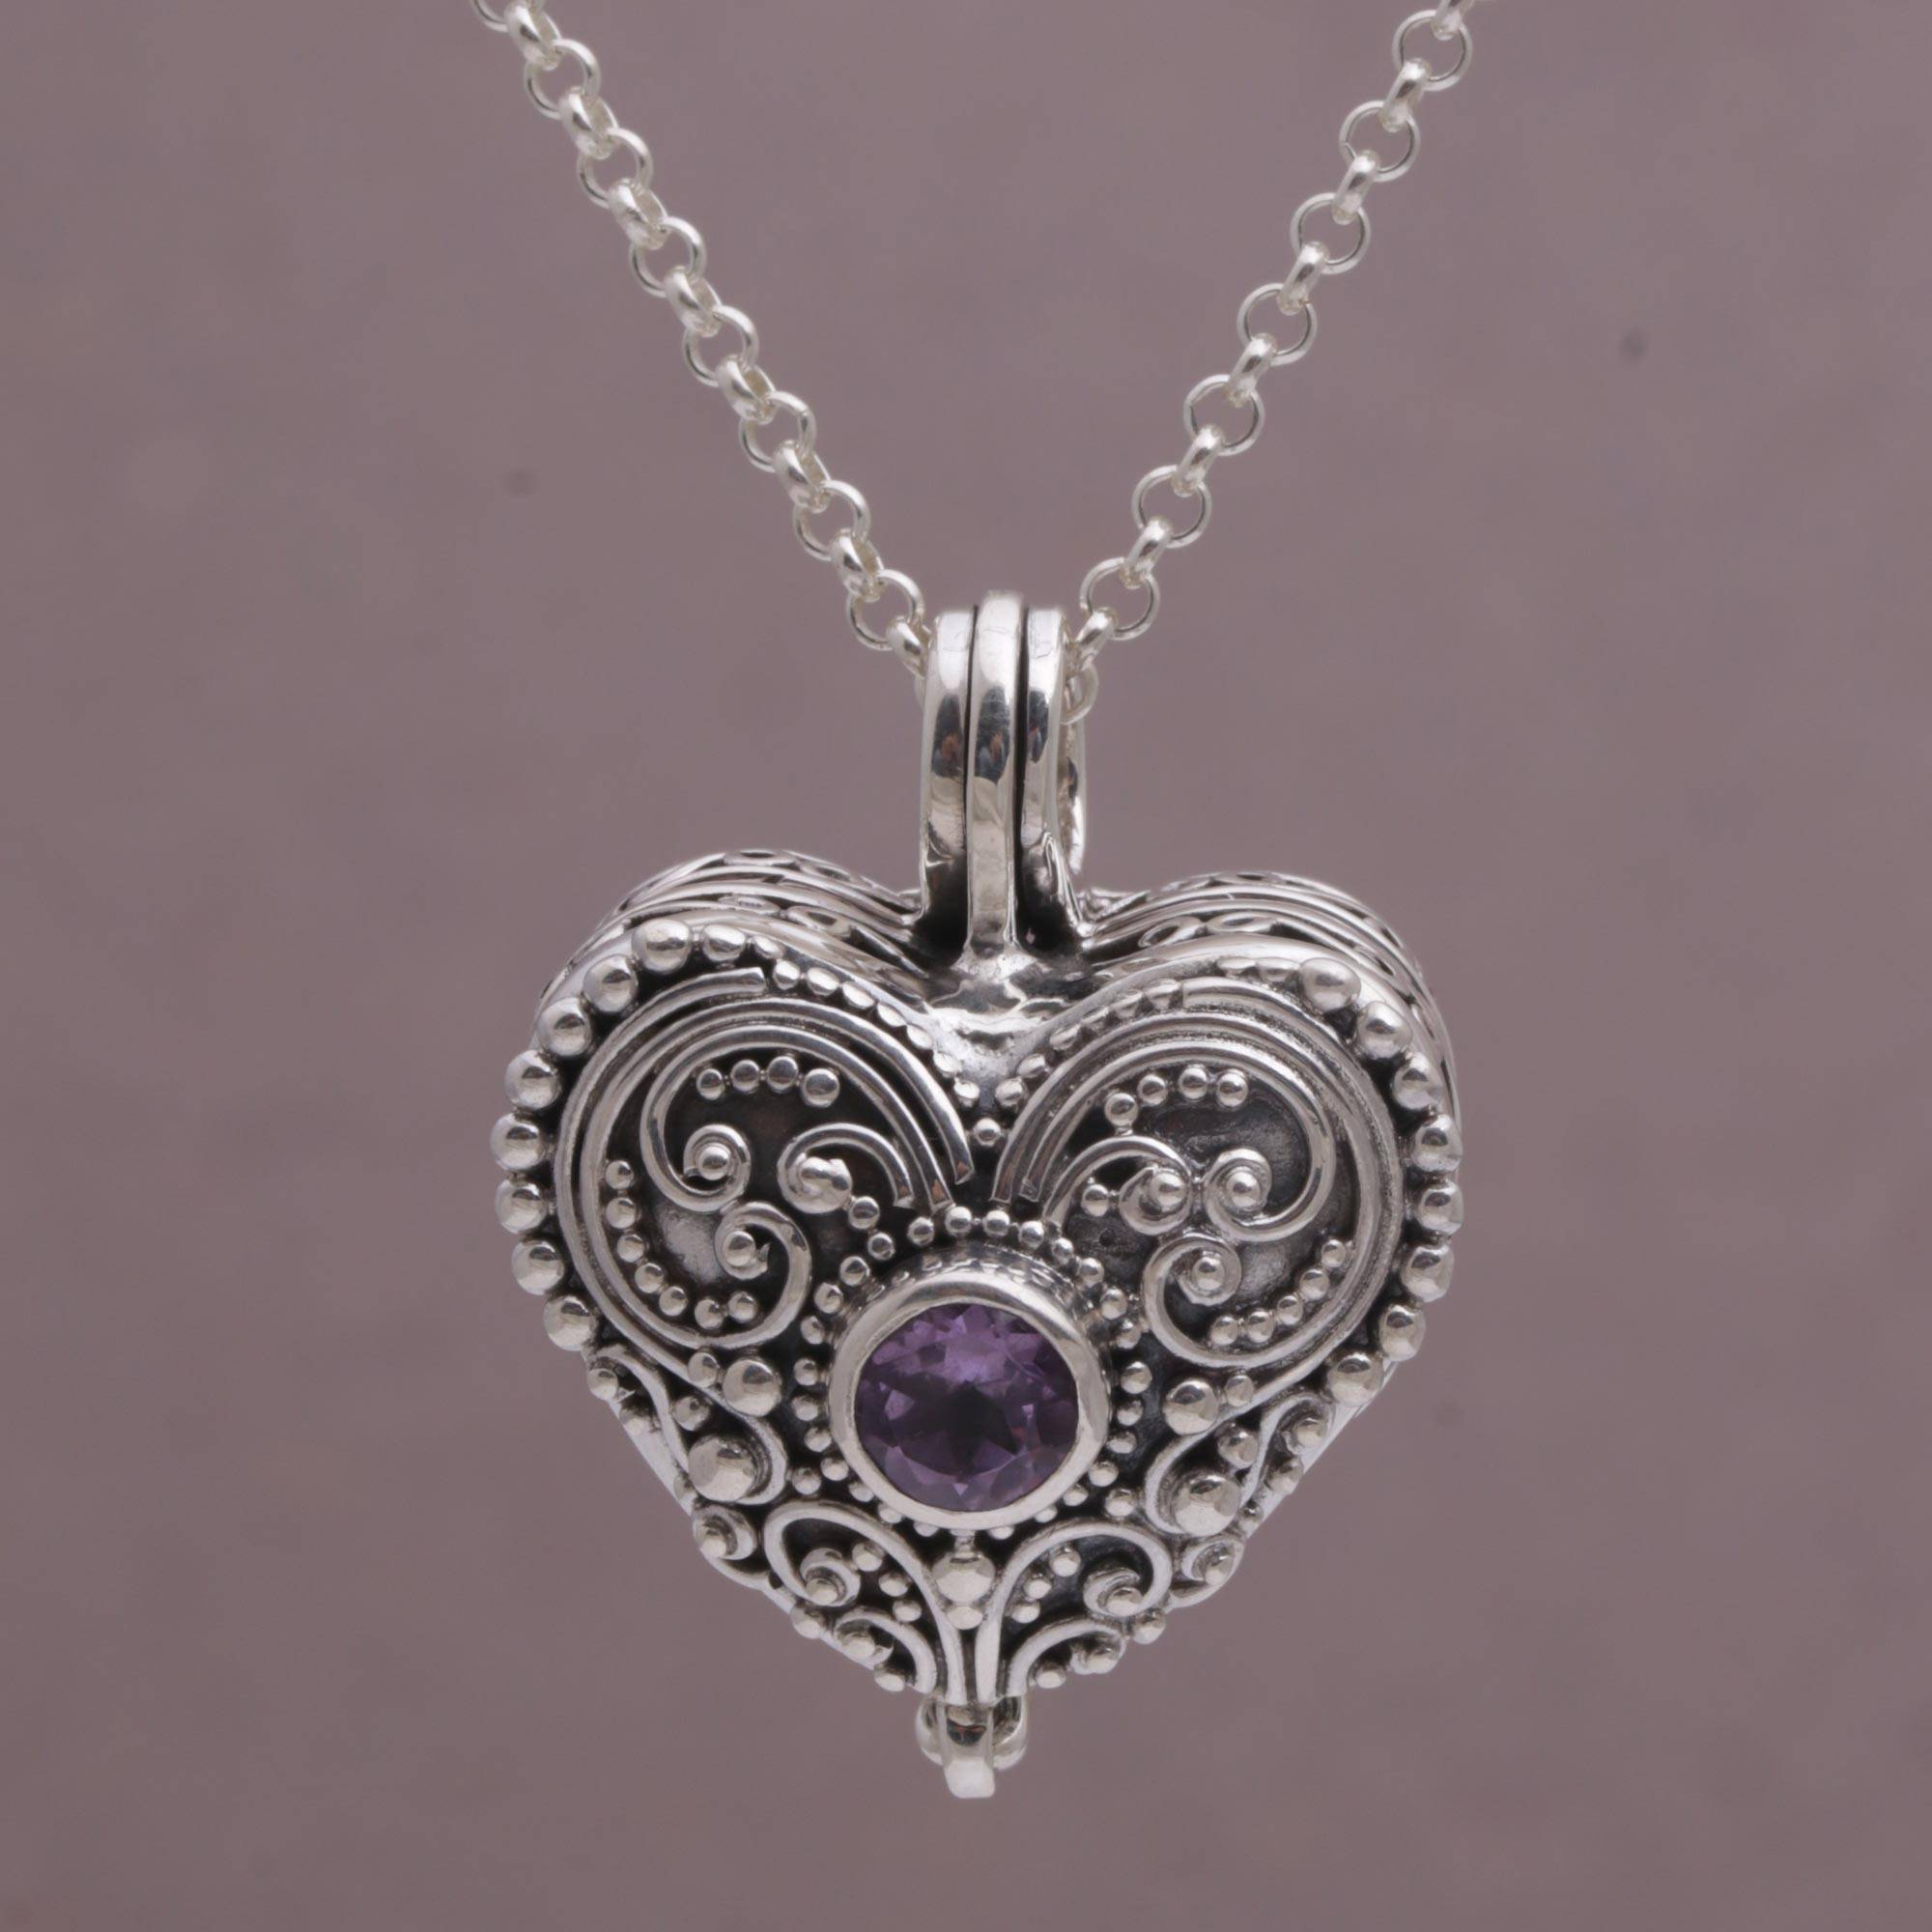 pendant pointe a heart stone of close mother up strand photo products pearl locket and